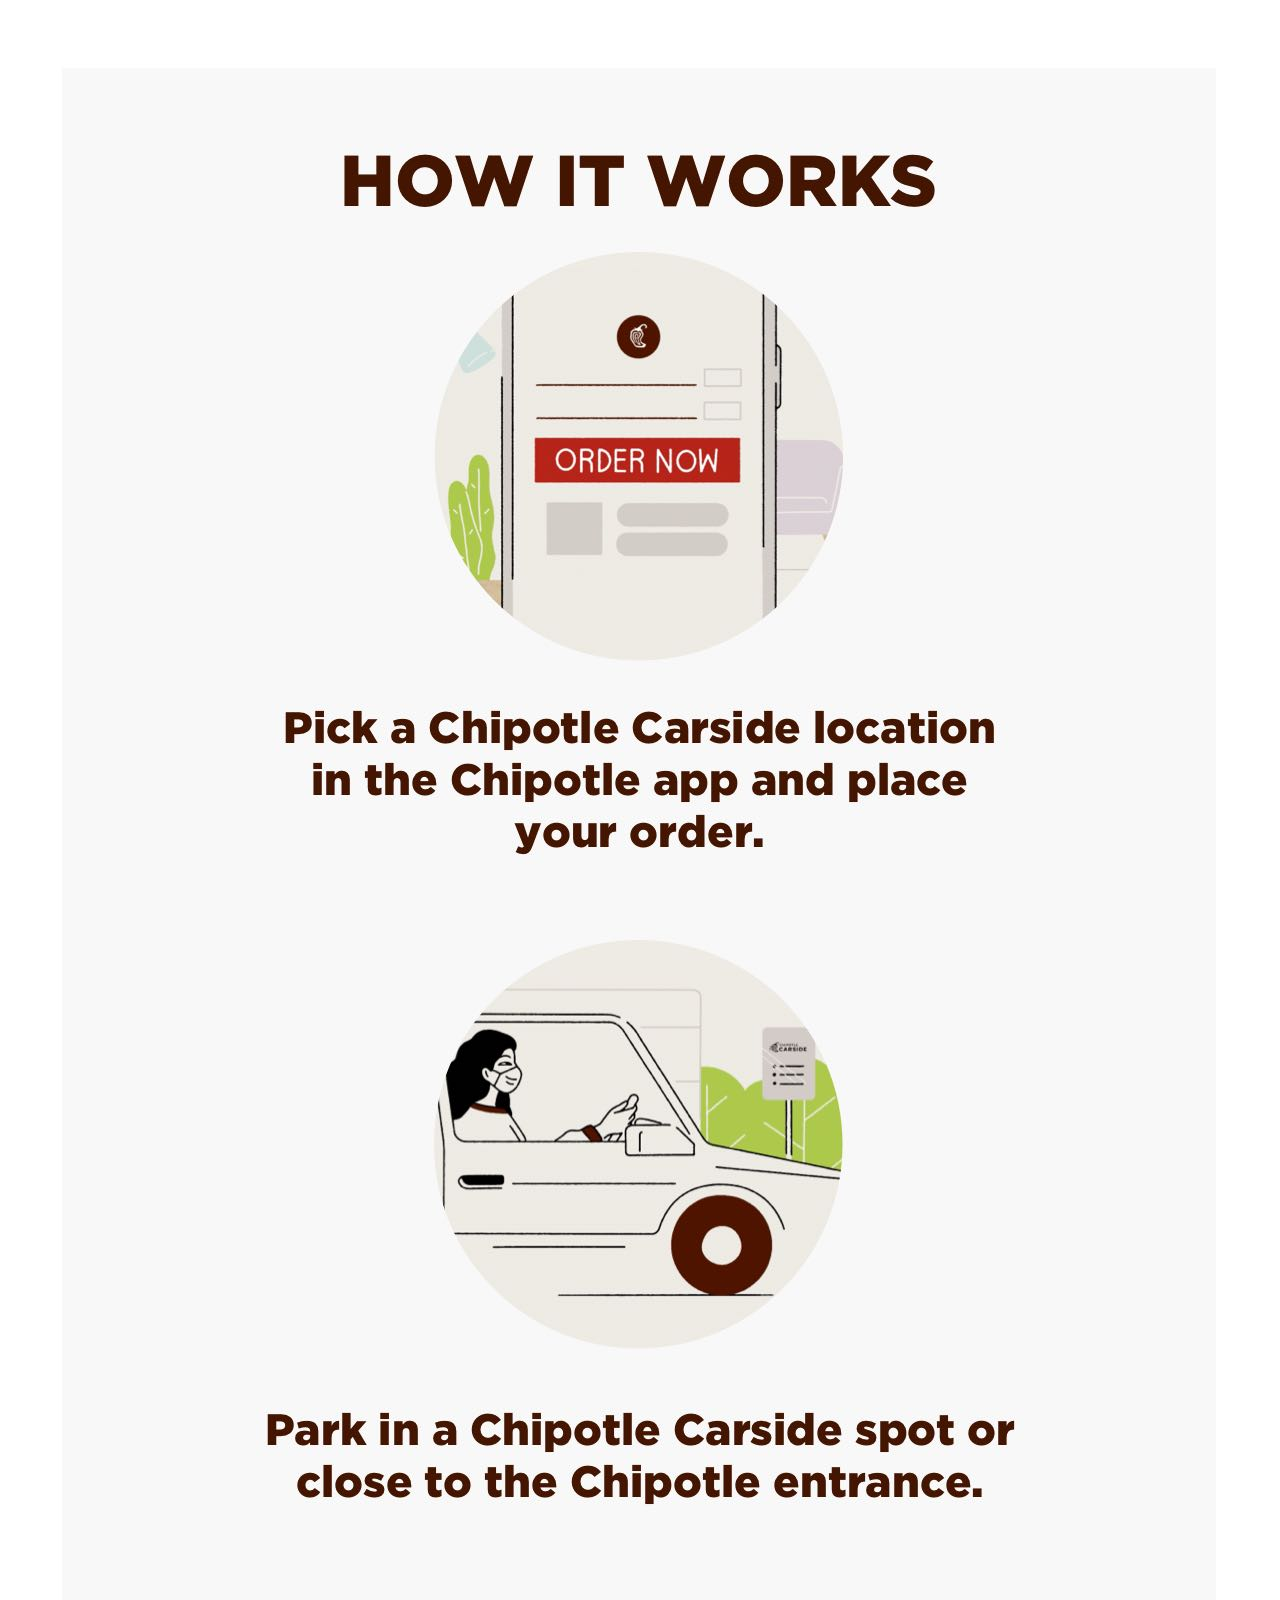 "How Chipotle Carside Pickup Works: 1. Pick a Chipotle Carside location in the app and place your order. 2. Park in a Chipotle Carside spot or close to the Chipotle entrance. 3. Tap ""I'm Here"" in the app to let the crew know you've arrived. 4. Hang tight, the crew is preparing your Chipotle order to be delivered right to your car."